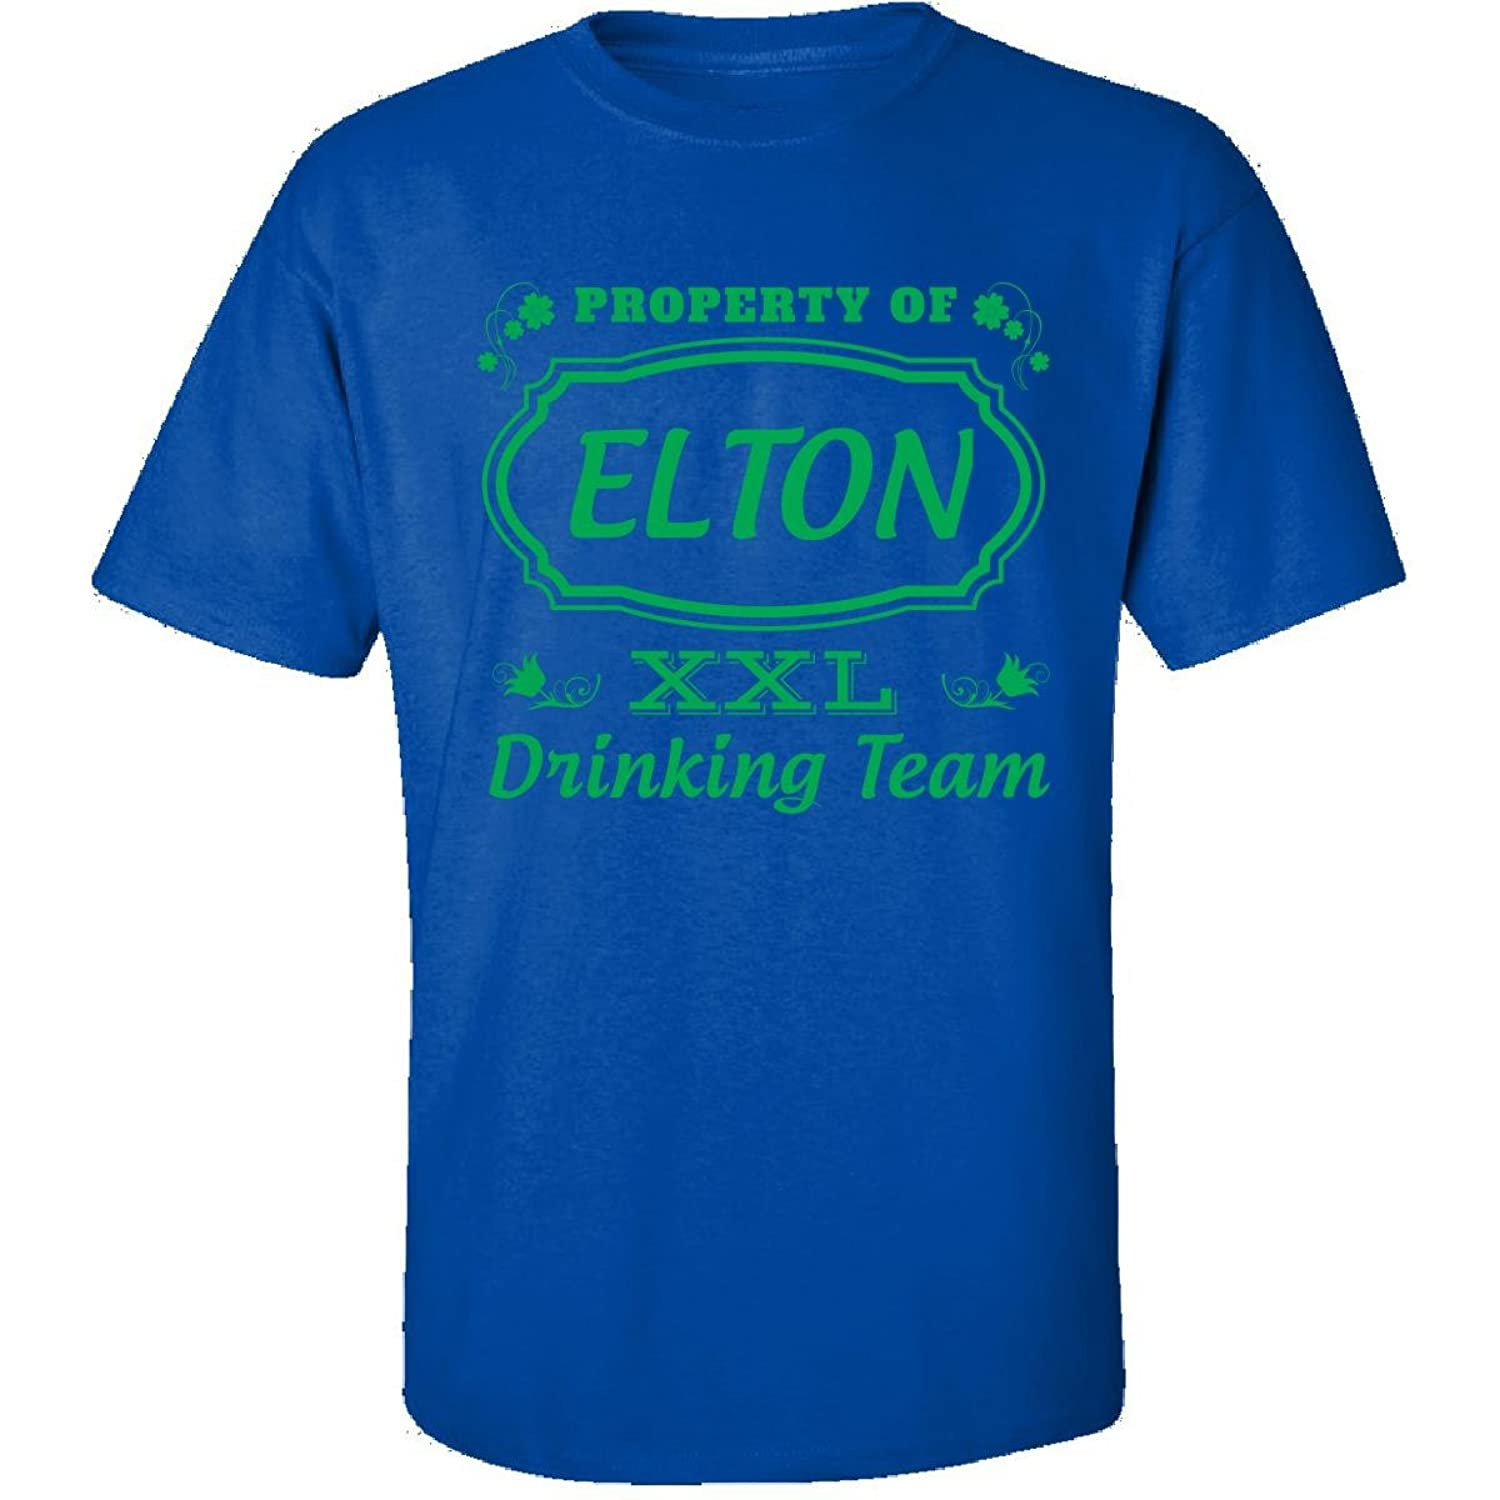 Property Of Elton St Patrick Day Beer Drinking Team - Adult Shirt